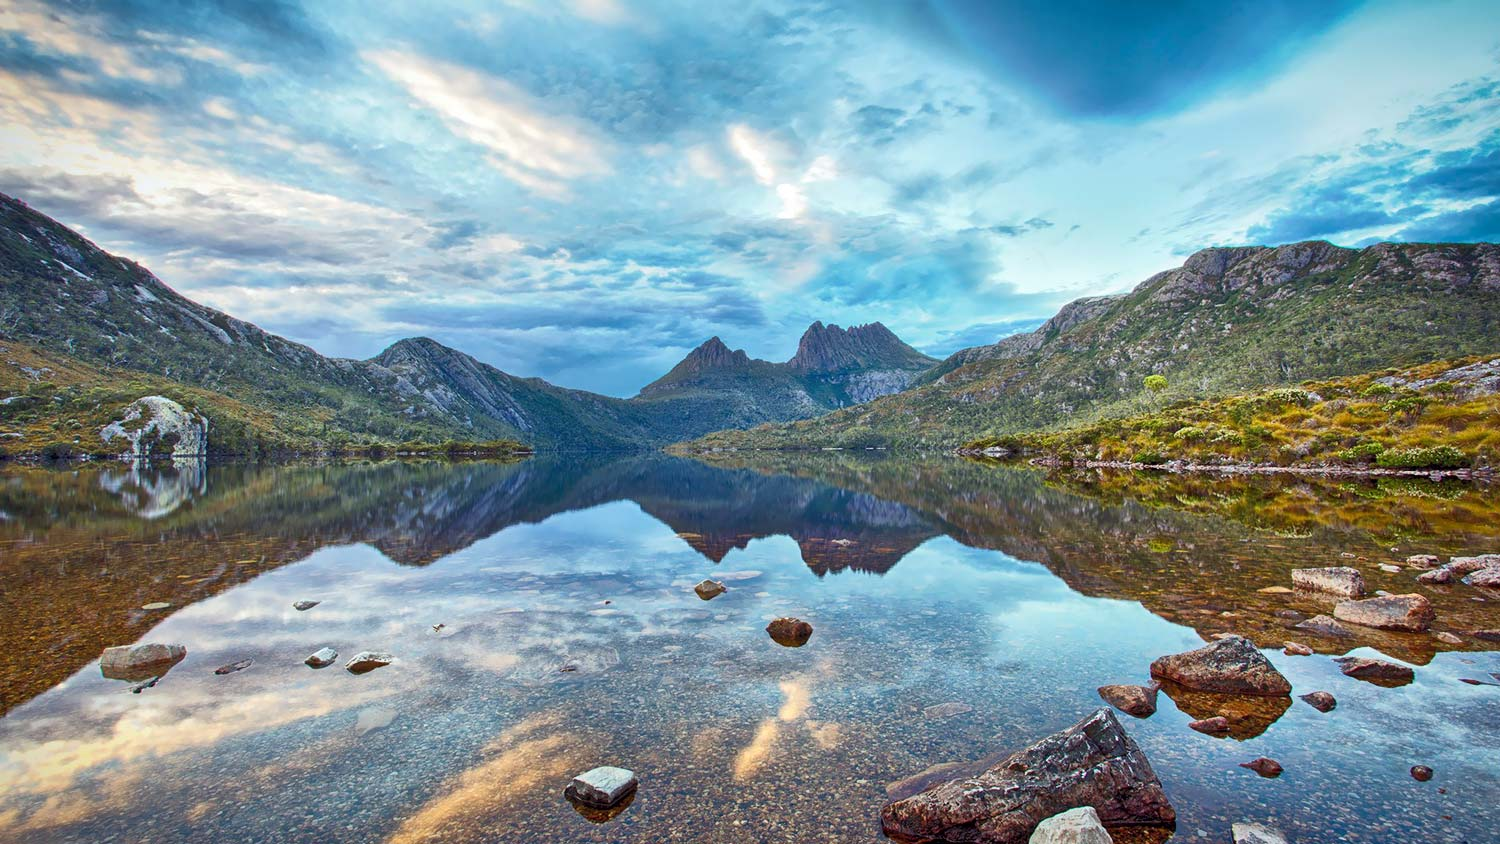 Mole Creek –Cradle Mountain - The most direct route from Launceston to Cradle Mountain takes you through Deloraine and onwards on a magical journey through rolling hillsides of farmland, into a picturesque valley and, in the heart of it all, the tranquil small town of Mole Creek.